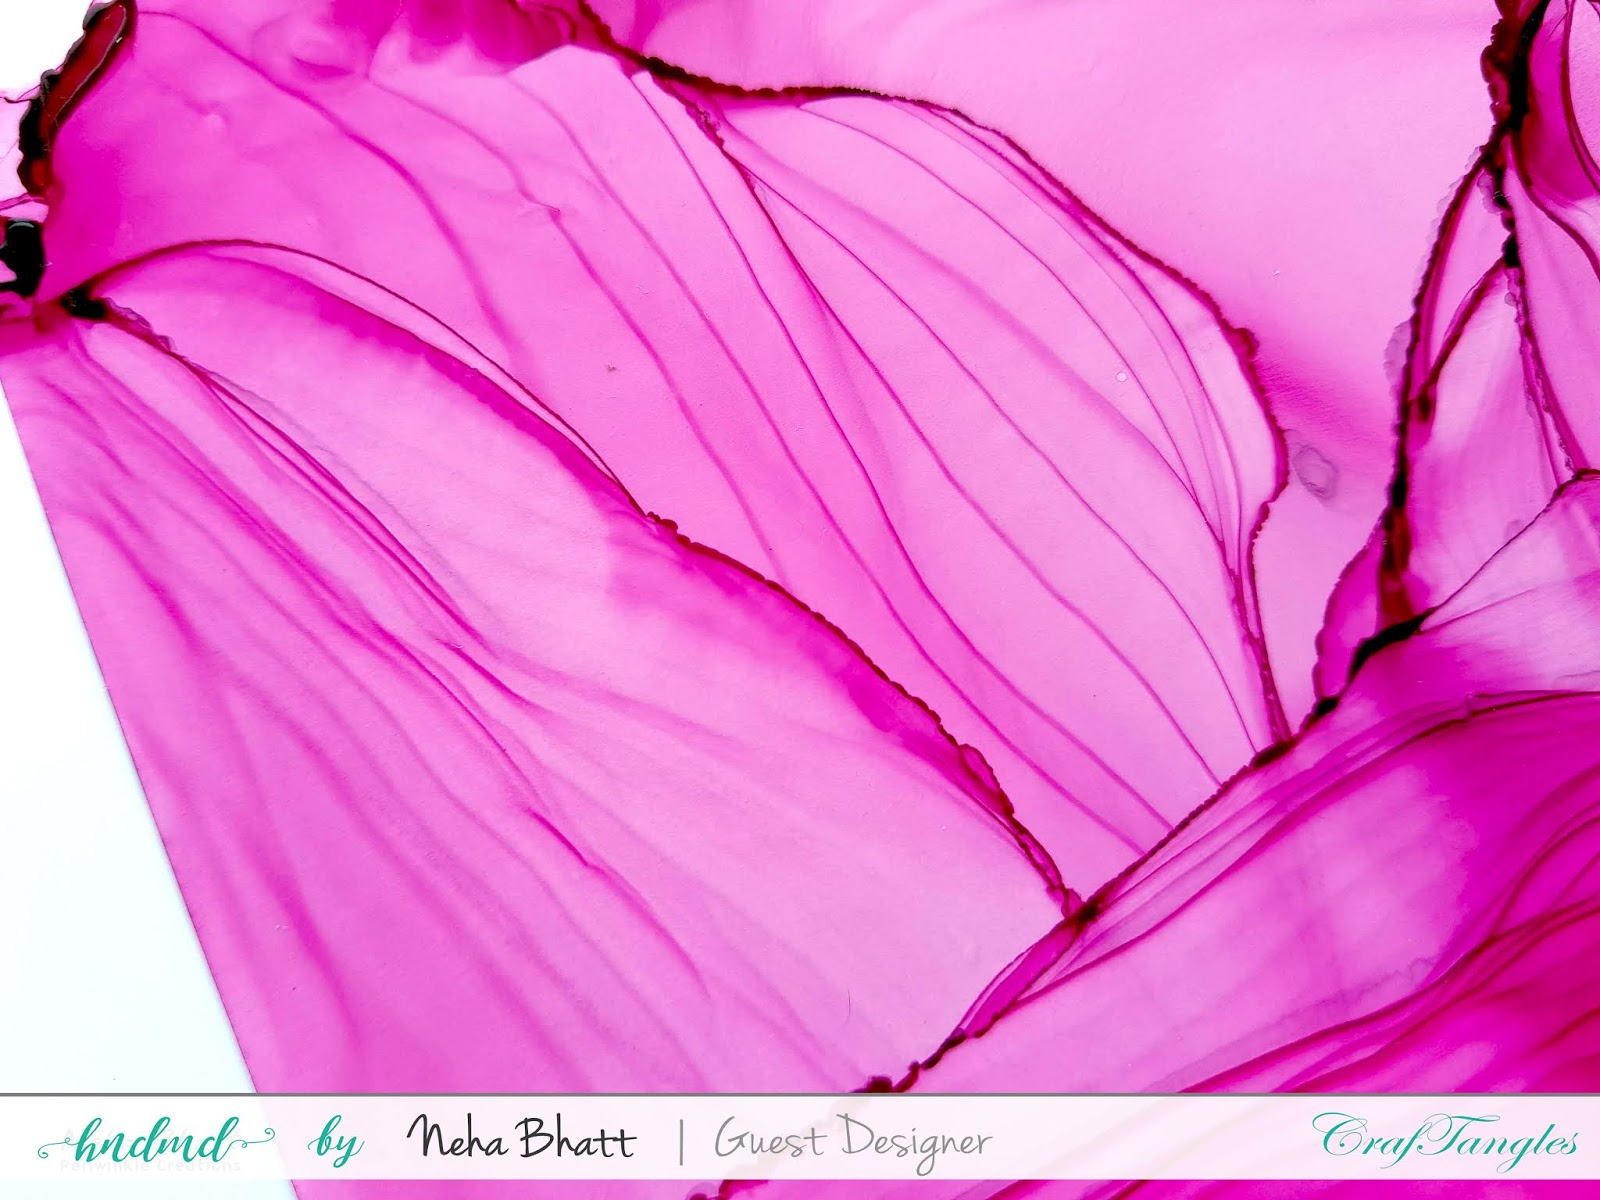 Some experiments with CrafTangles alcohol ink papers by Neha Bhatt [Periwinkle Creations] 24